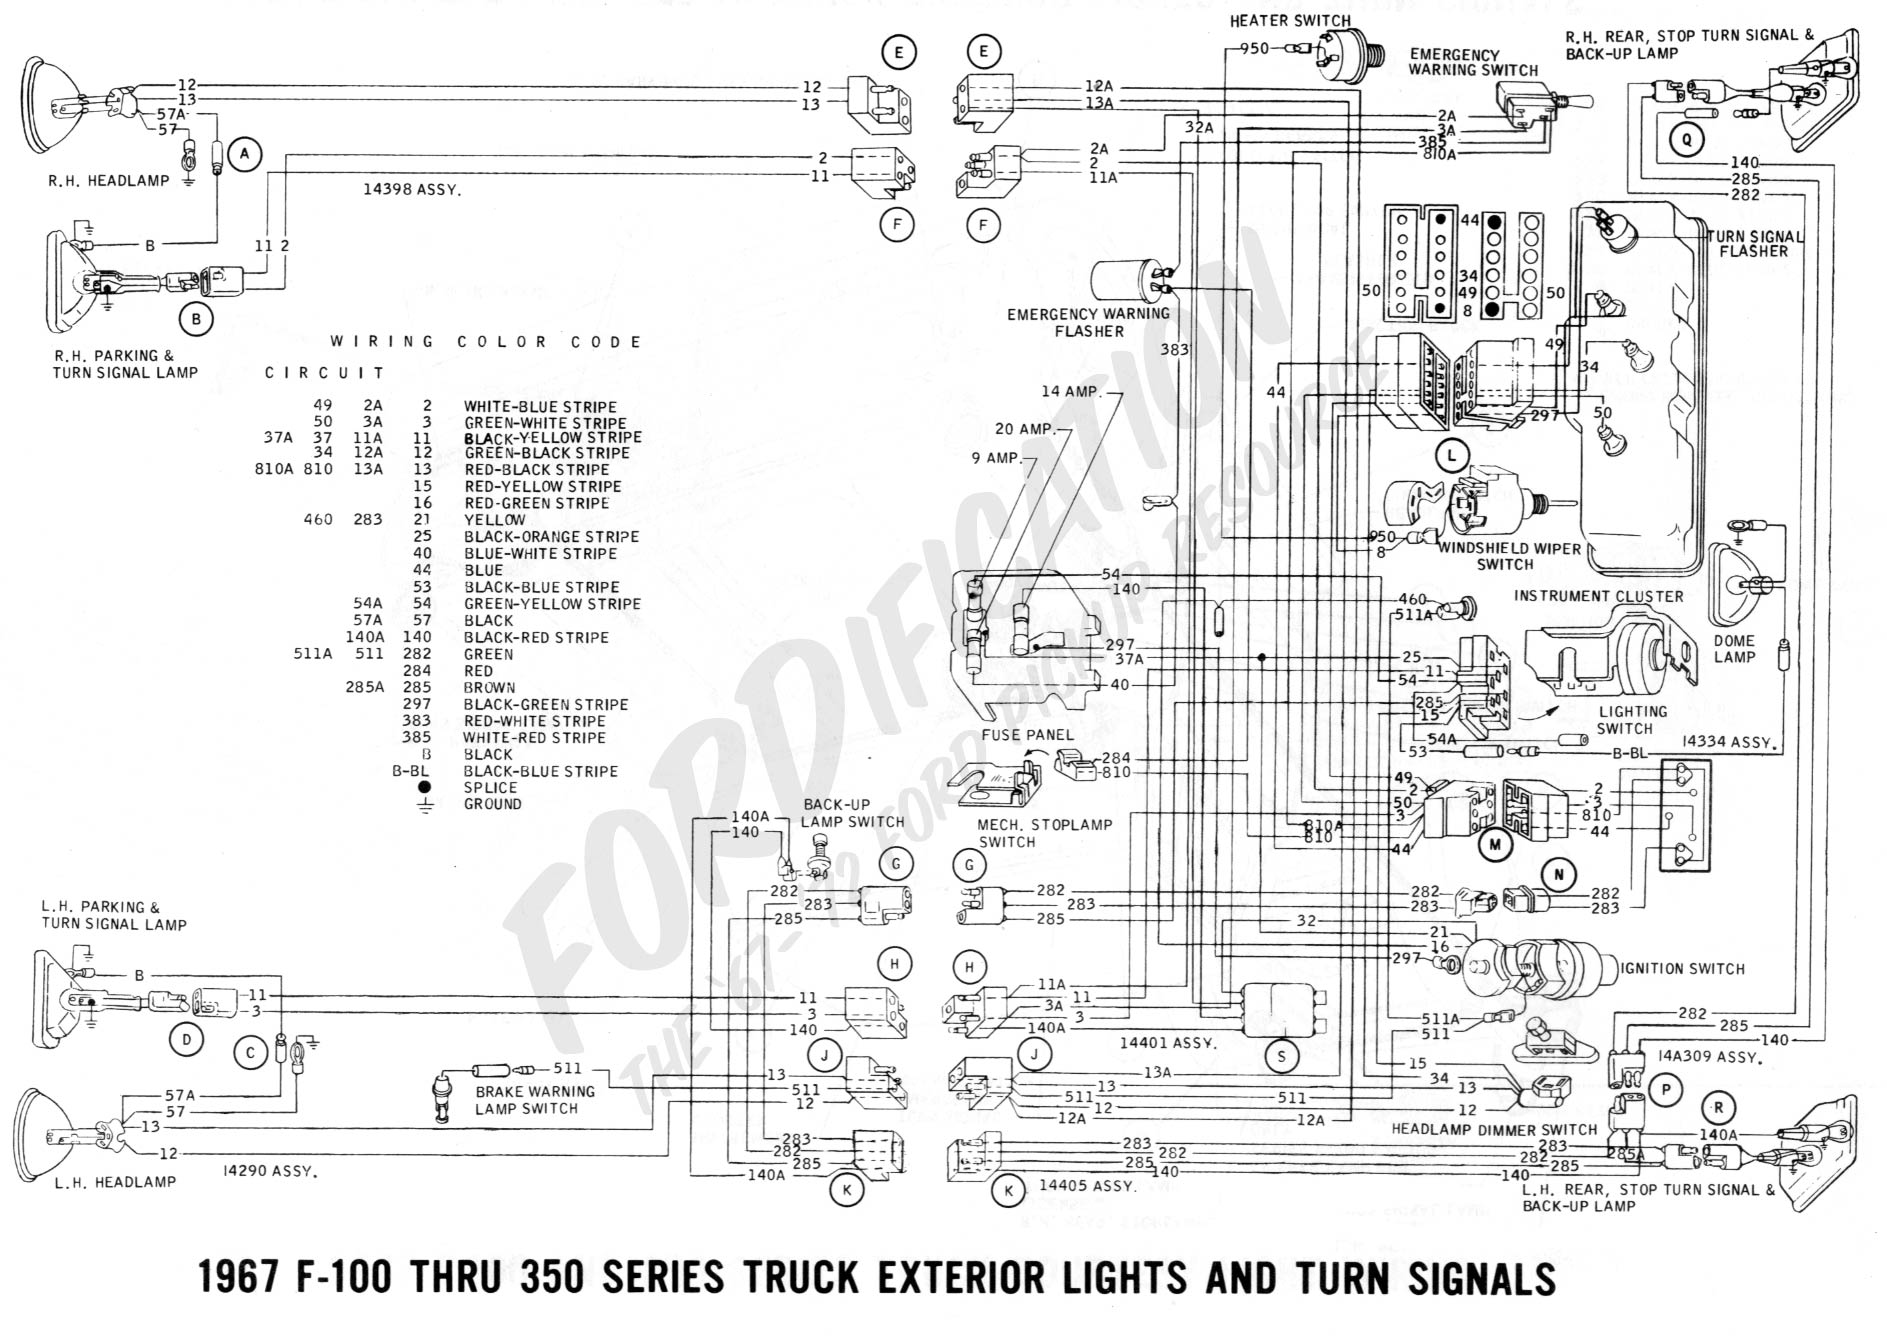 2004 Ford Econoline Wiring Diagram Archive Of Automotive Ranger Electrical 1965 Auto Rh Doesitsuit Me